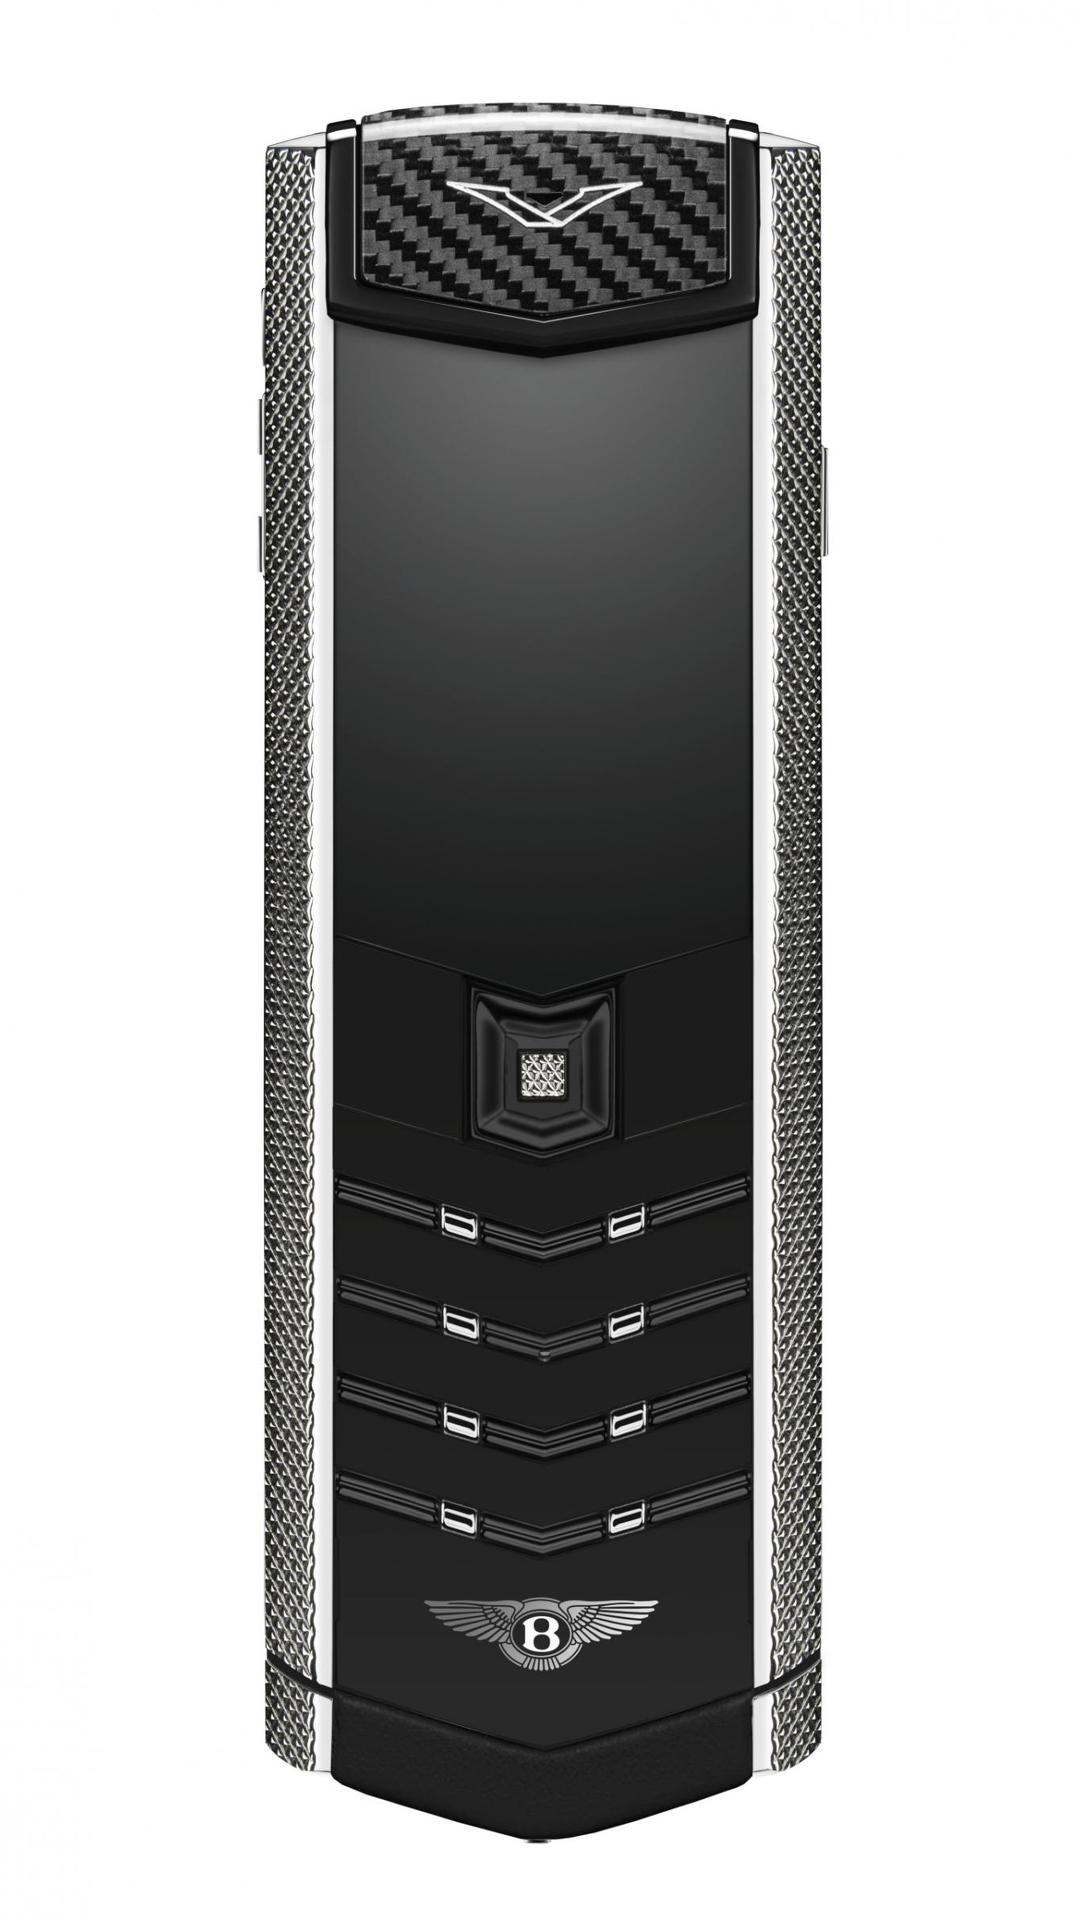 Bentley introduces their new cellphone at Goodwood